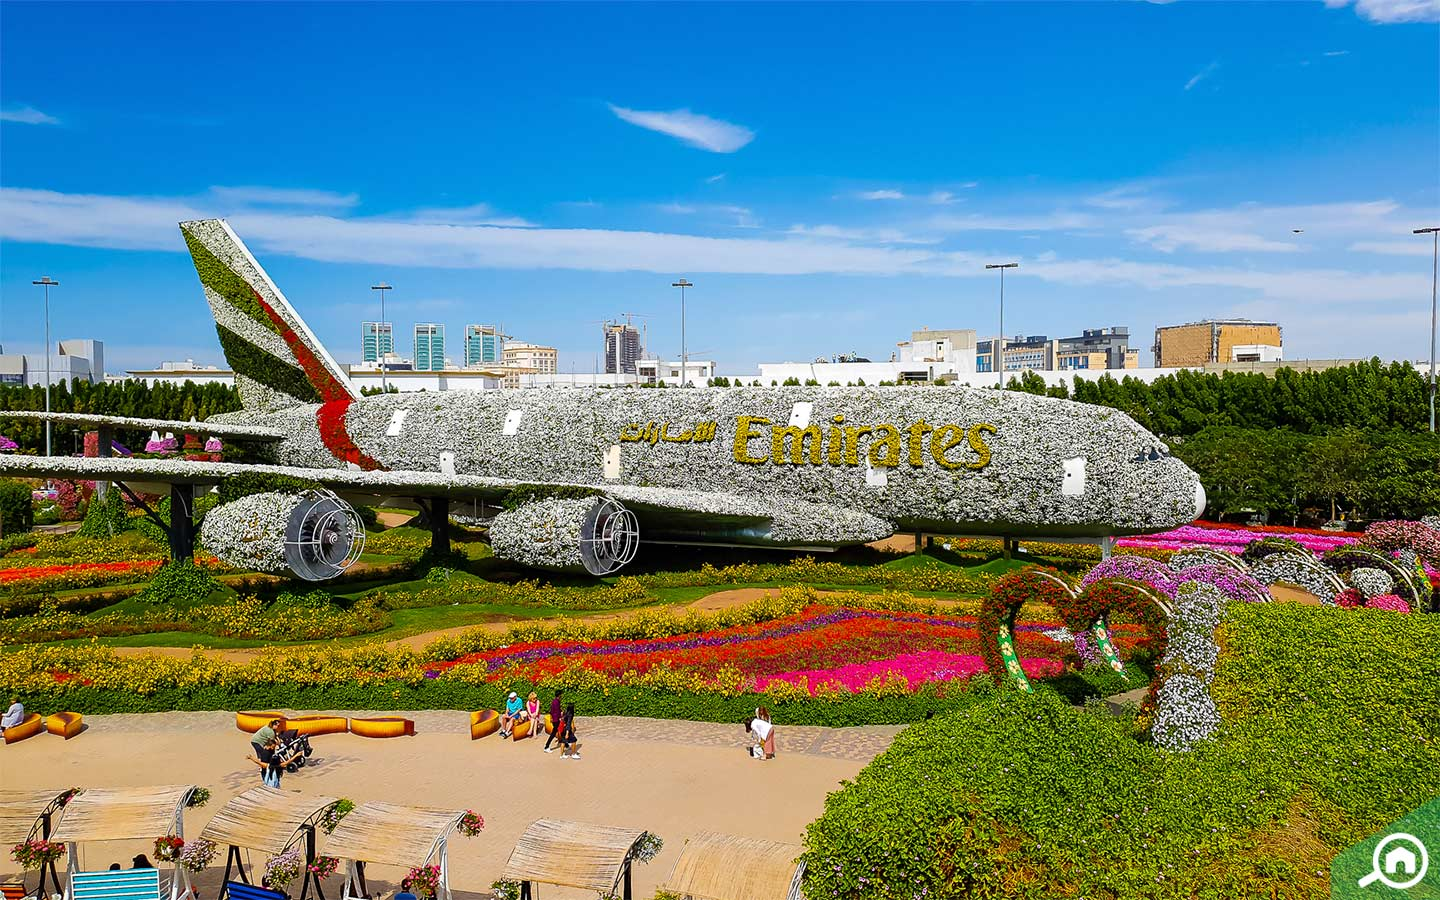 A plane decorated with flowers rests peacefully on the garden bed of Dubai Miracle Garden